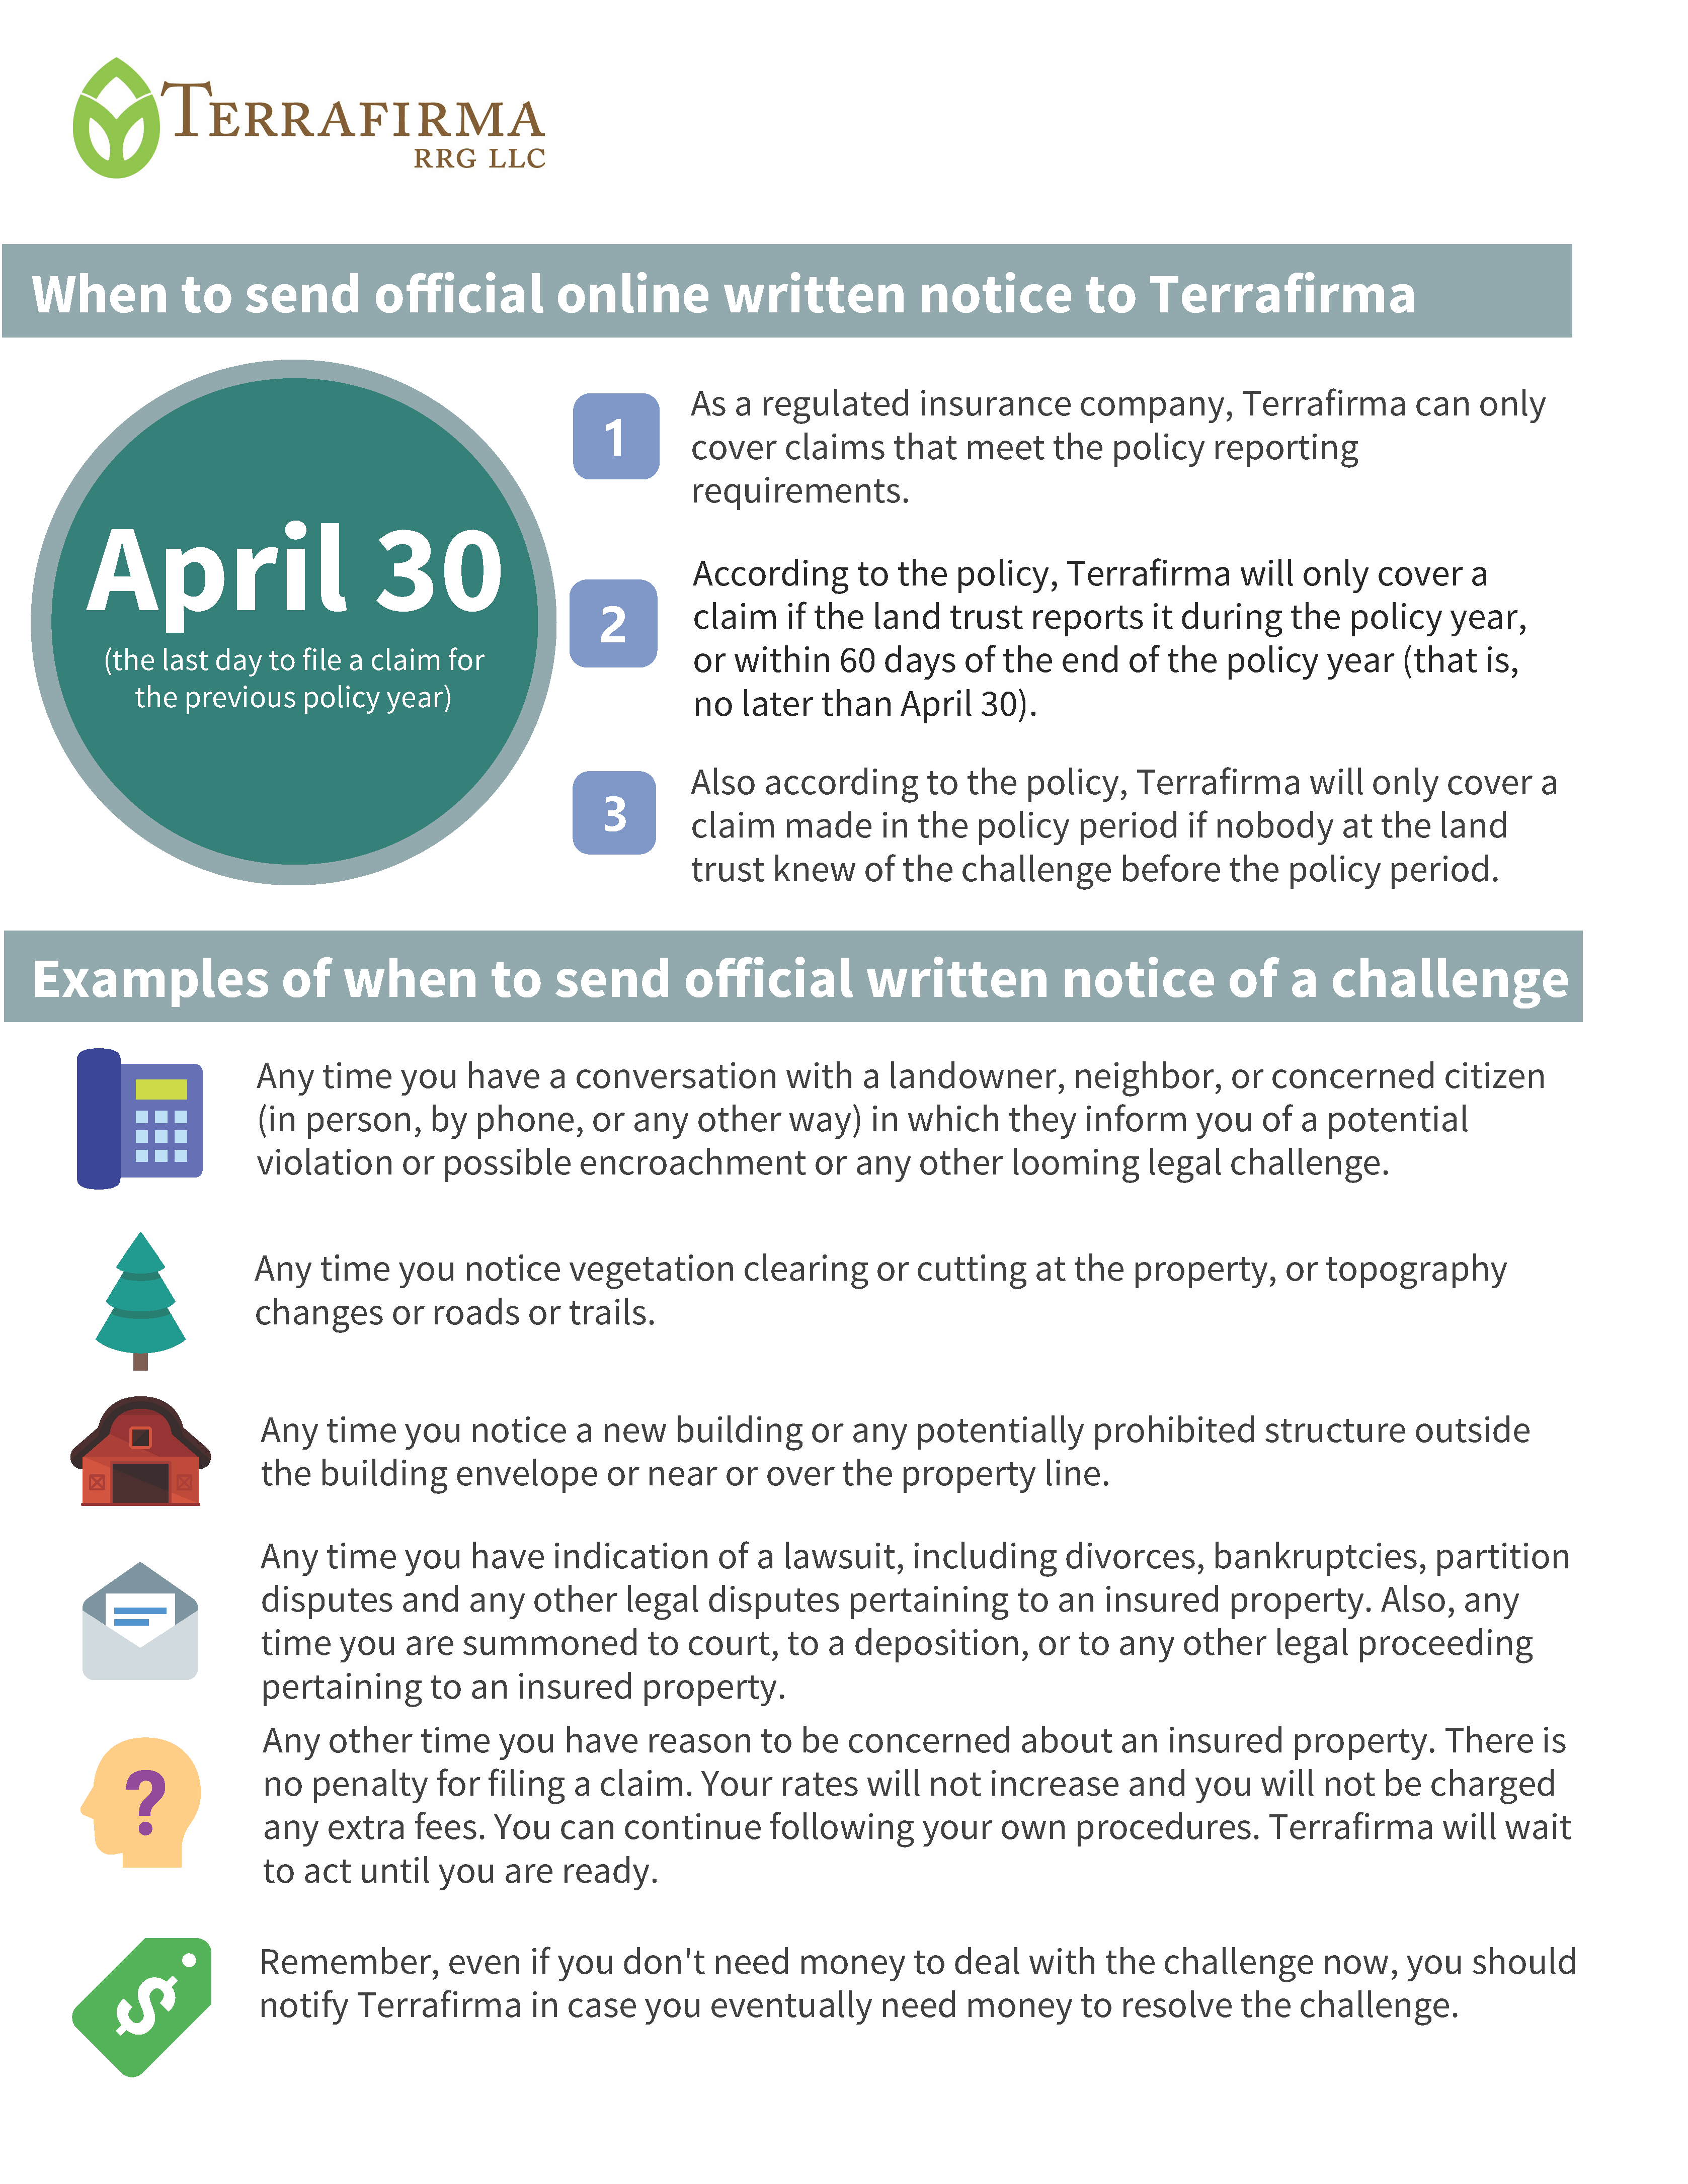 Please remember to file any lingering claims from incidents that you first  learned of between March 1, 2017 and March 1, 2018 by that day!